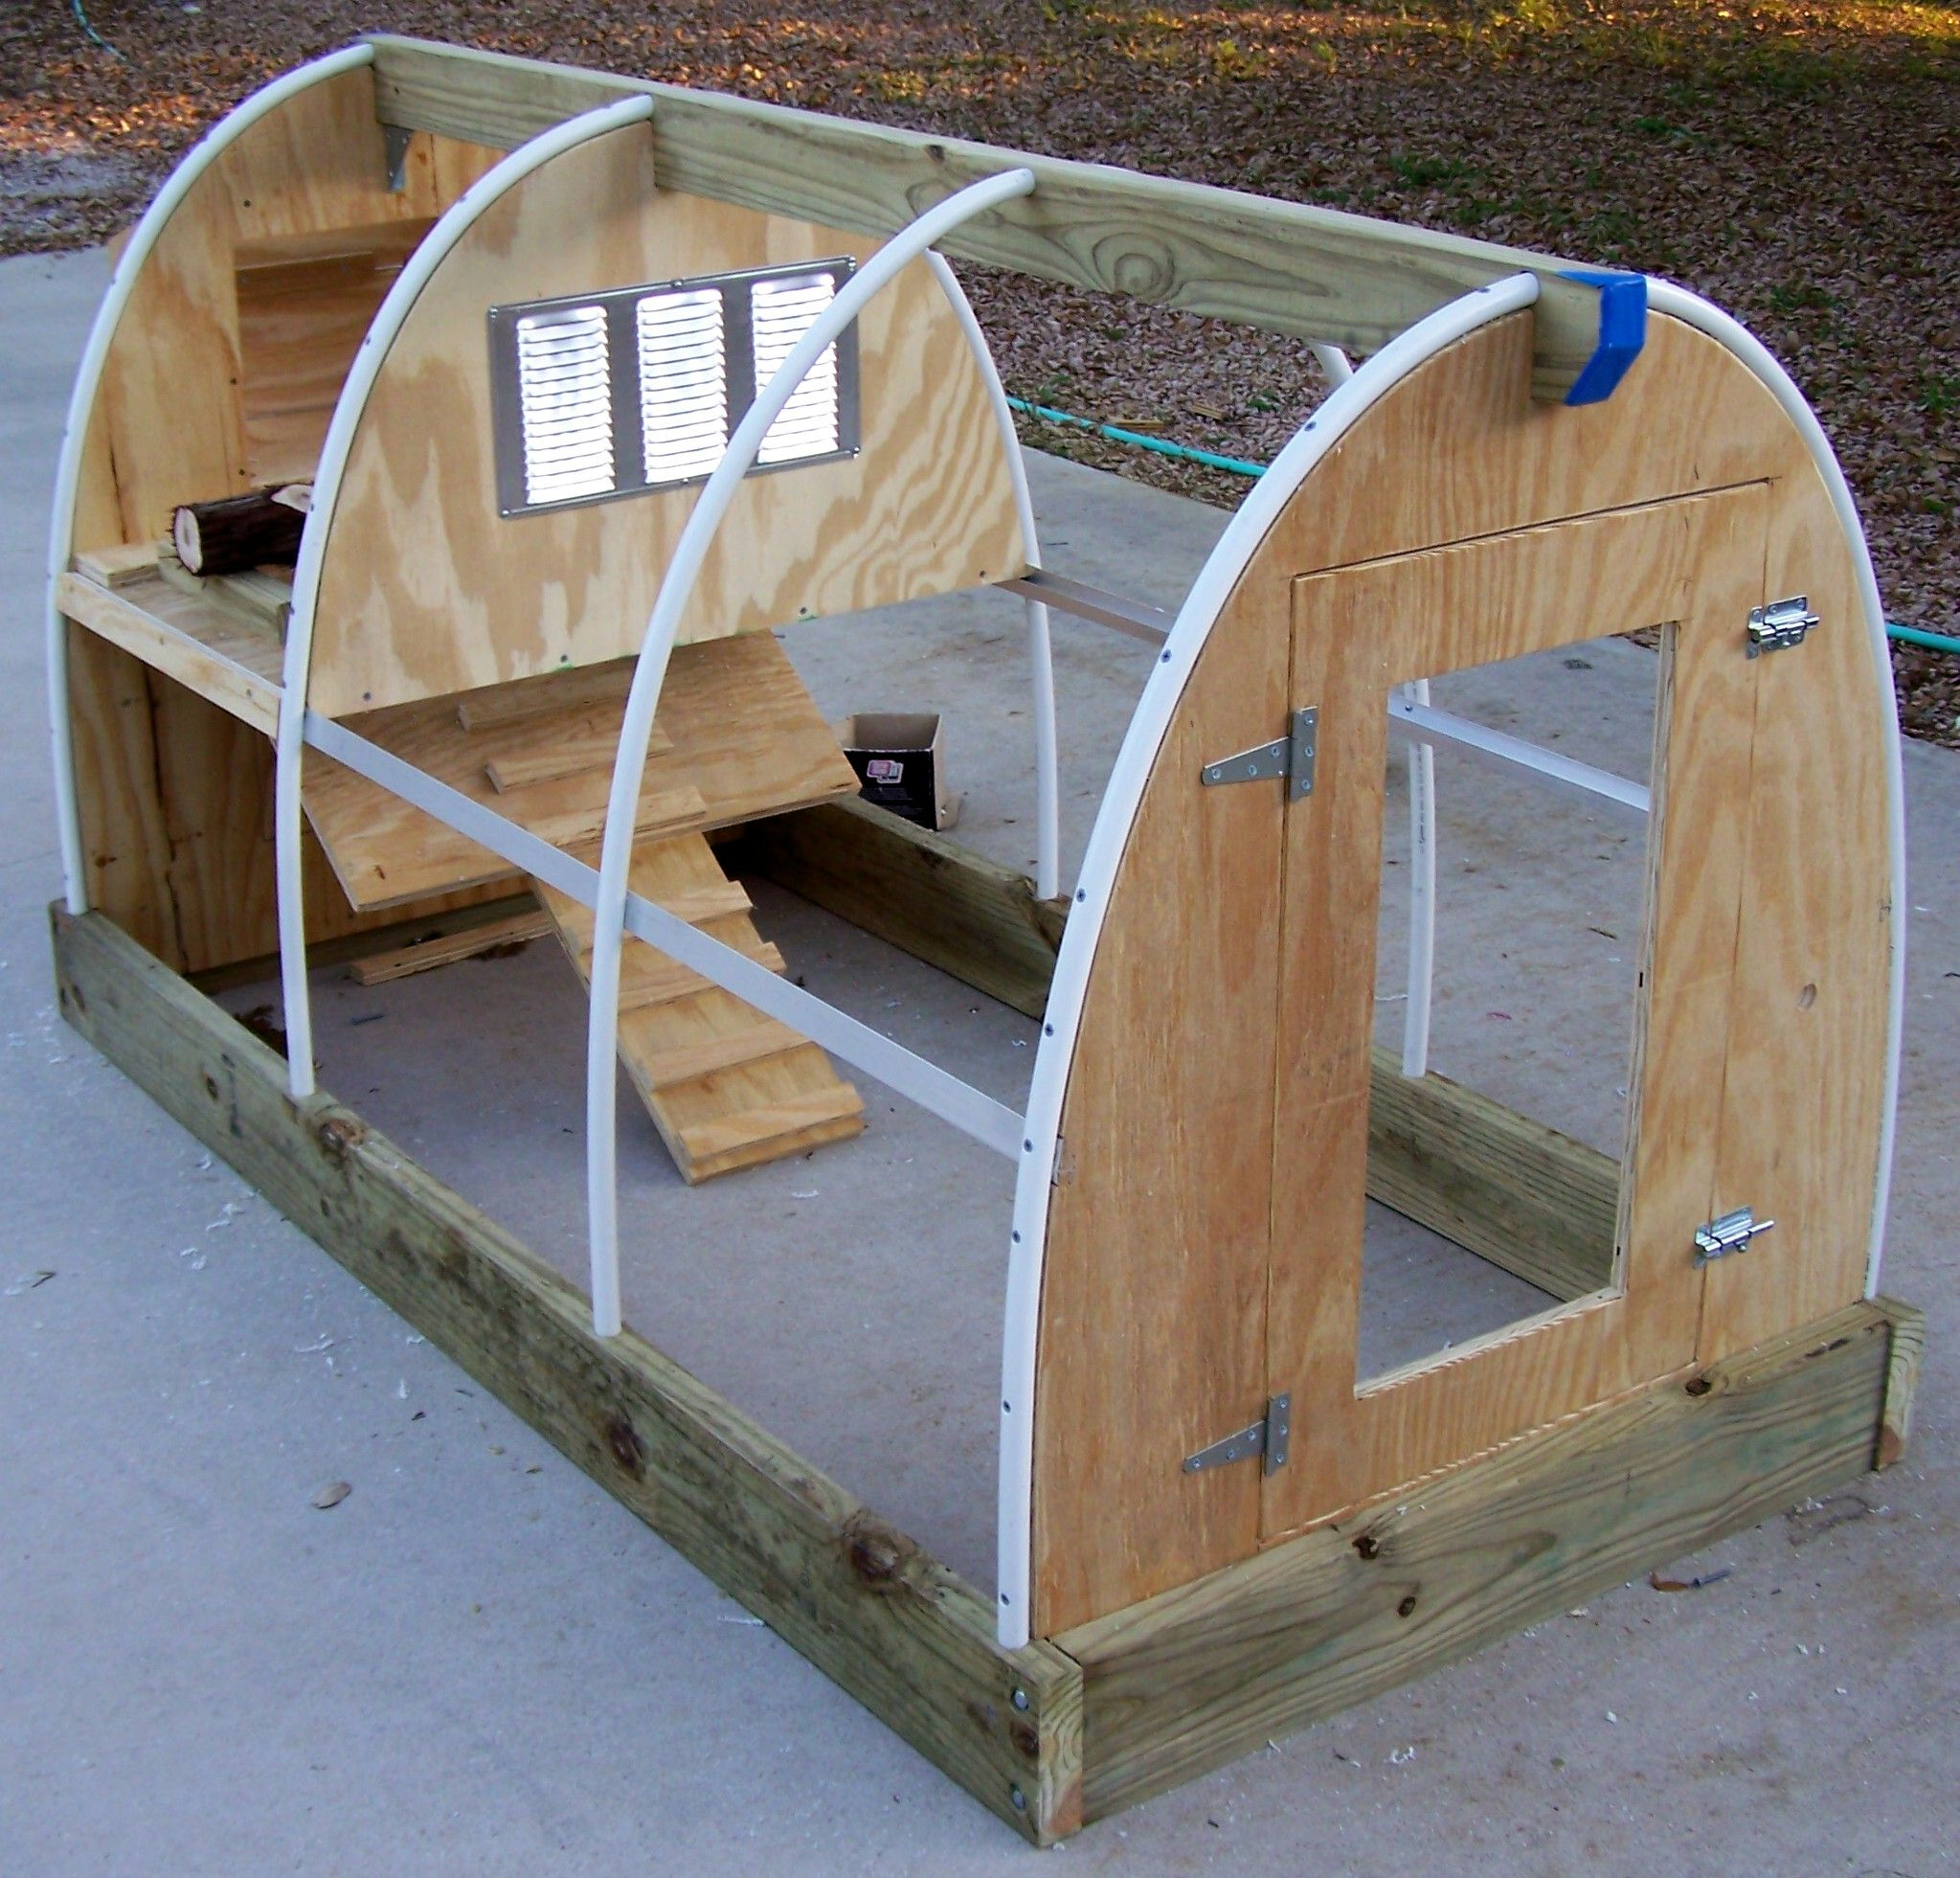 Diy chicken coops plans that are easy to build diy for Easy house plans to build